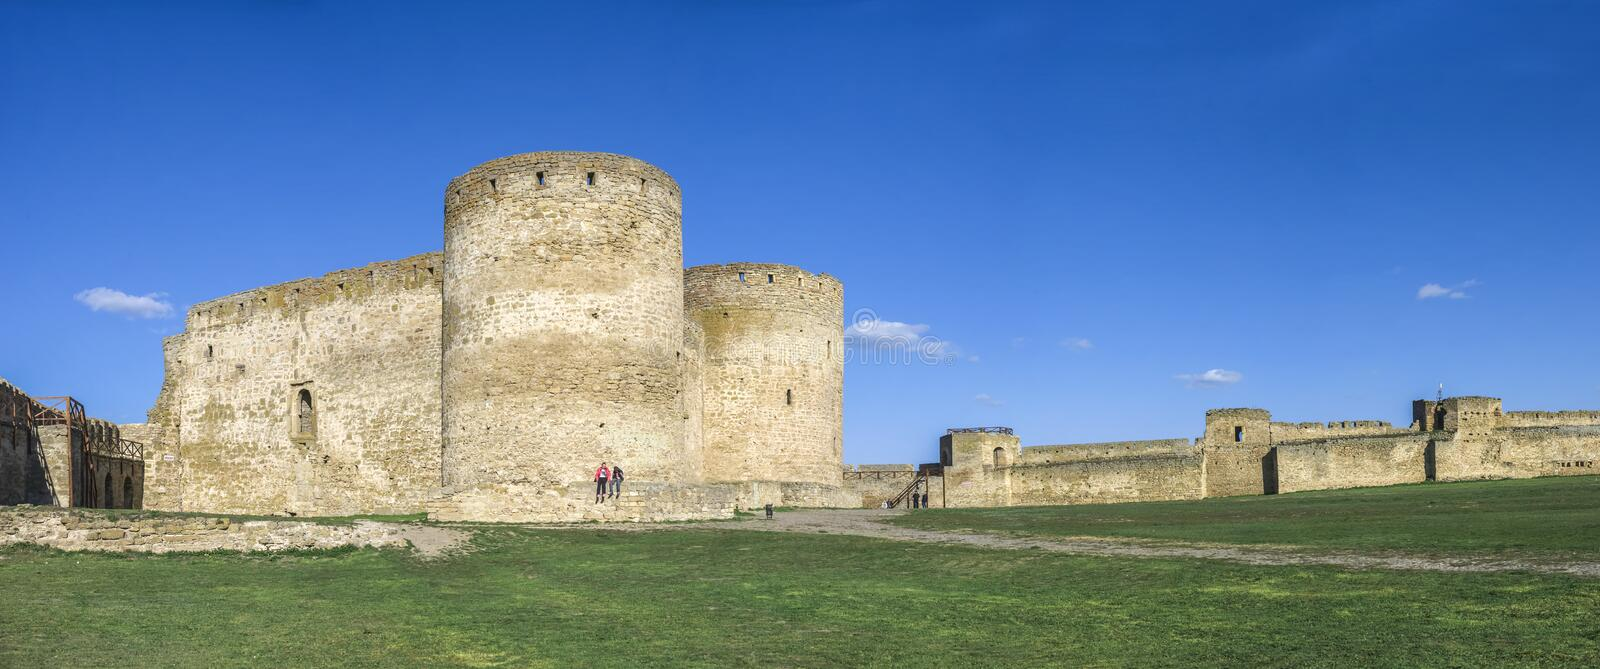 Fortress Walls of the Akkerman Citadel in Ukraine. Akkerman, Ukraine - 03.23.2019. Panoramic view of the Fortress walls and towers from the inside of the royalty free stock images